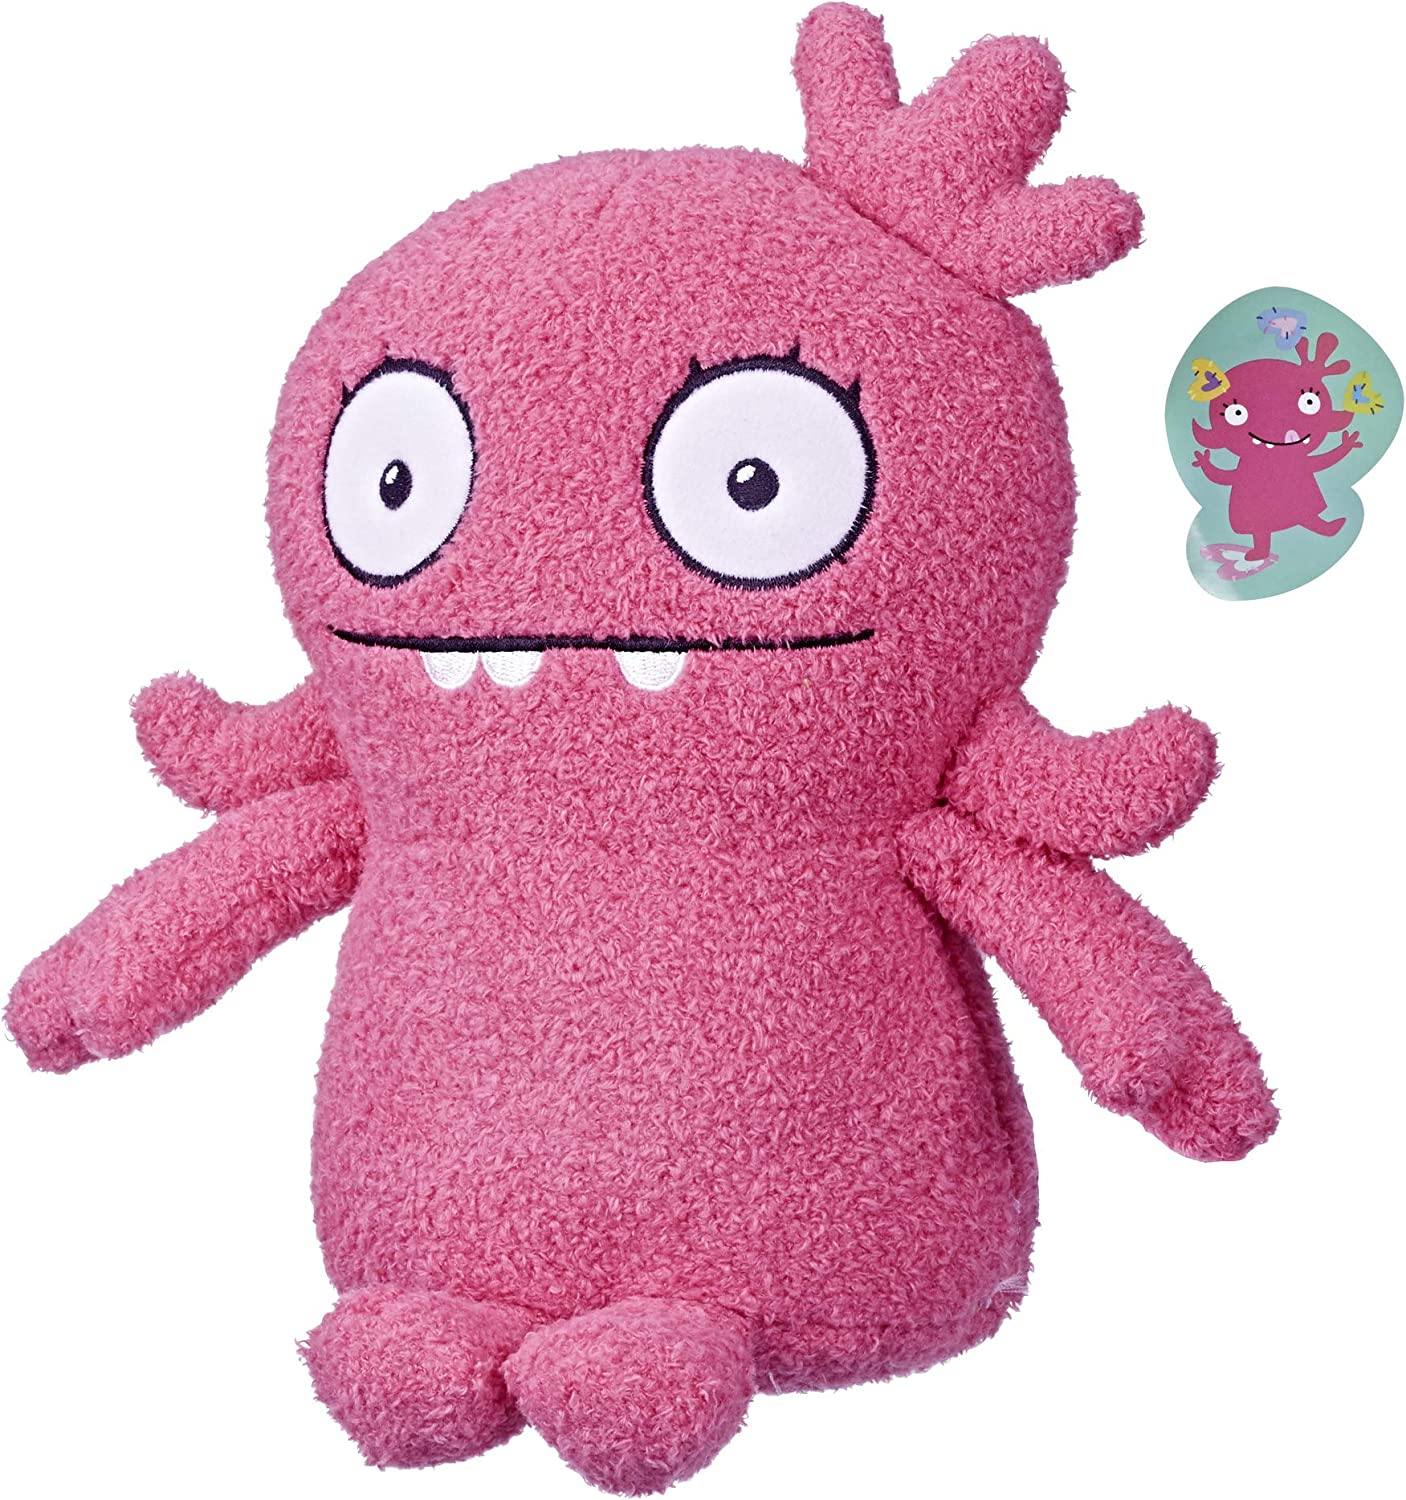 "UGLYDOLLS Yours Truly Moxy Stuffed Plush Toy, 9.75"" Tall: Toys & Games"